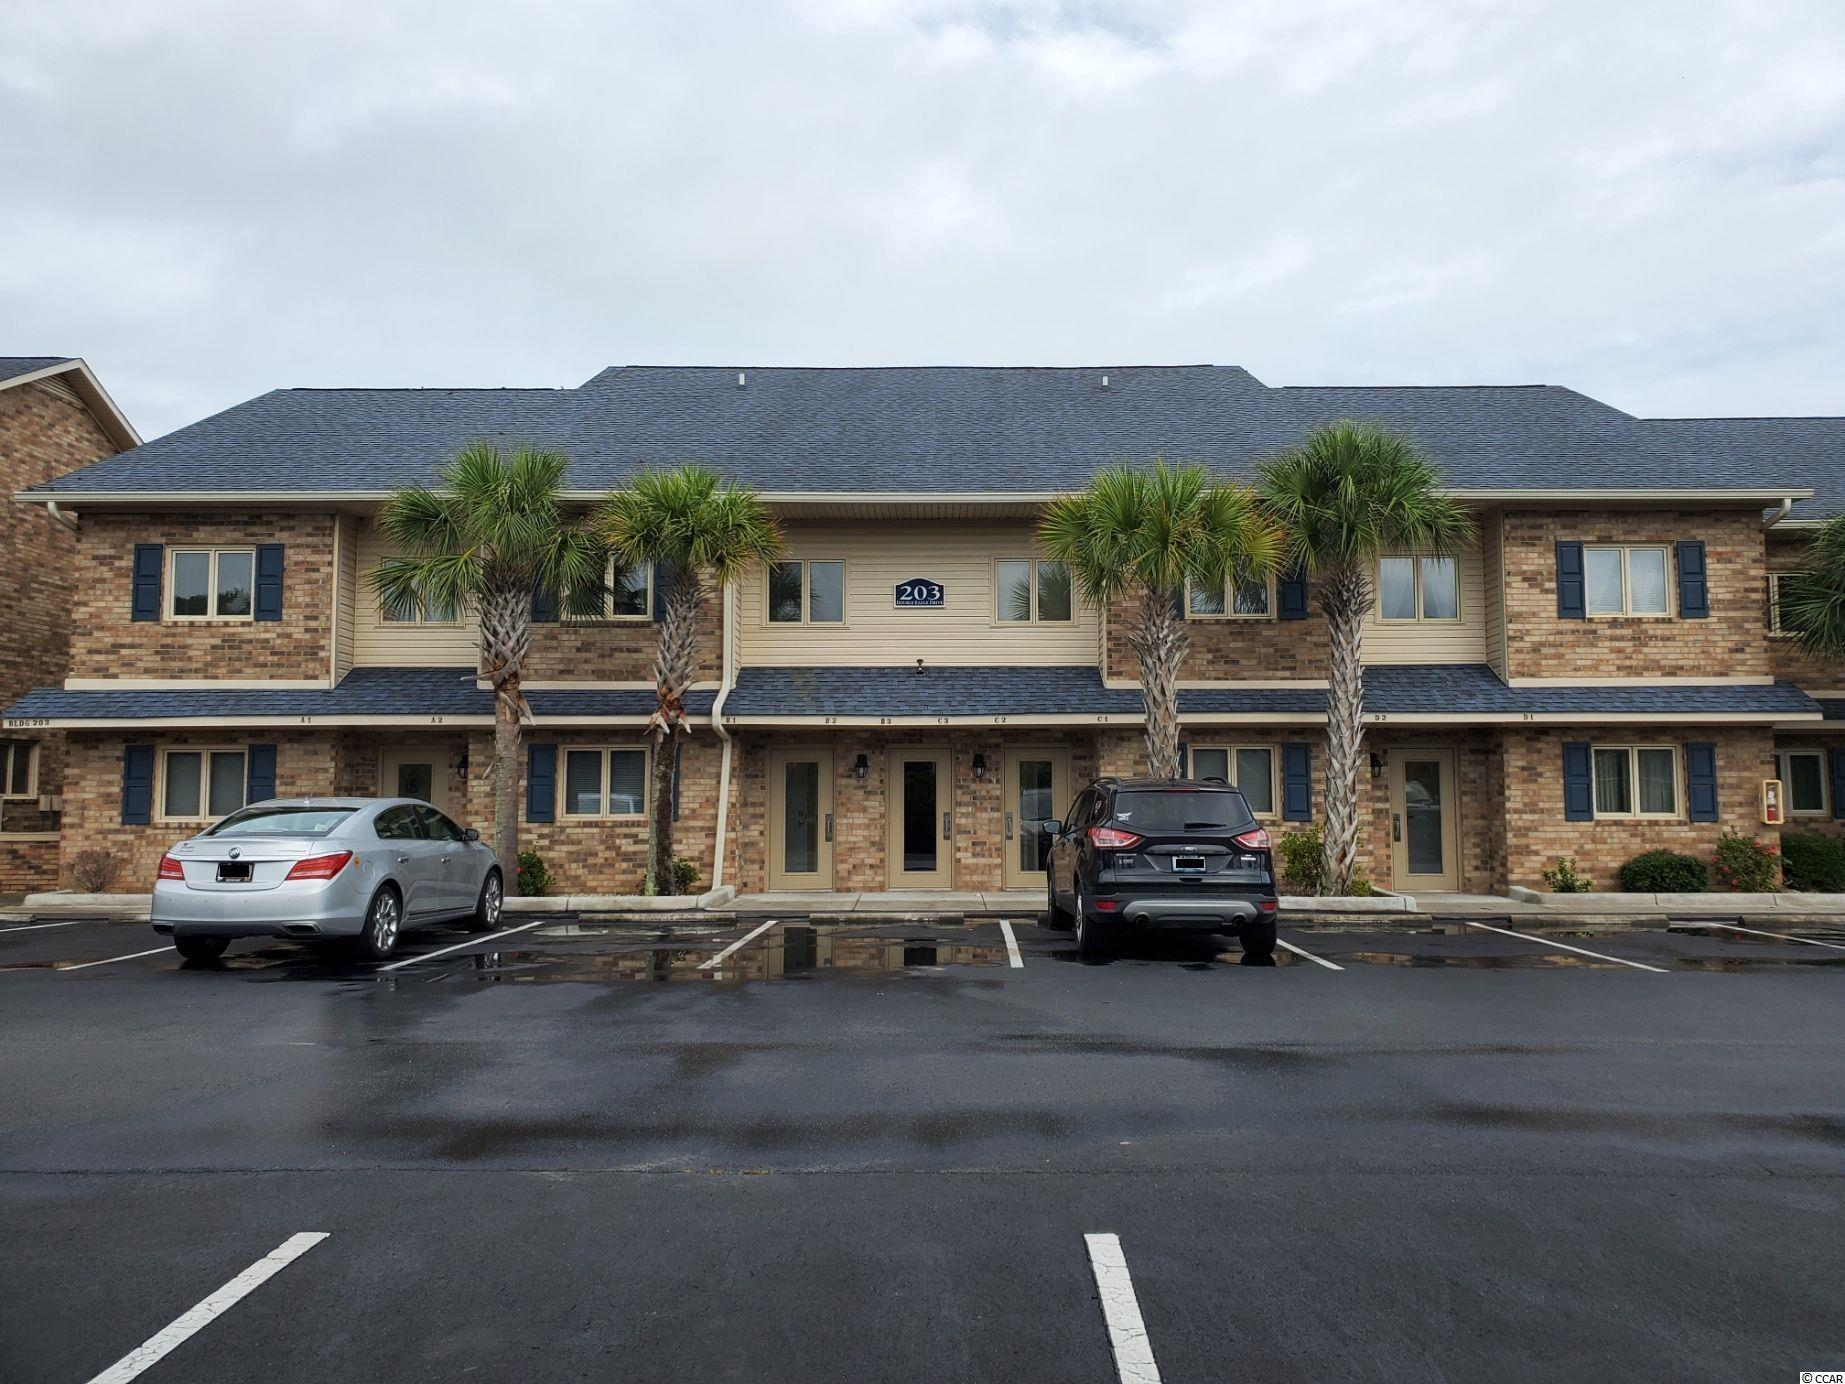 Newly listed 2BR / 2 full bath condo.  This condo is priced to sell and may not last very long.  Schedule your showing today or check back for more details and photos in the next few days, if the unit is still available.